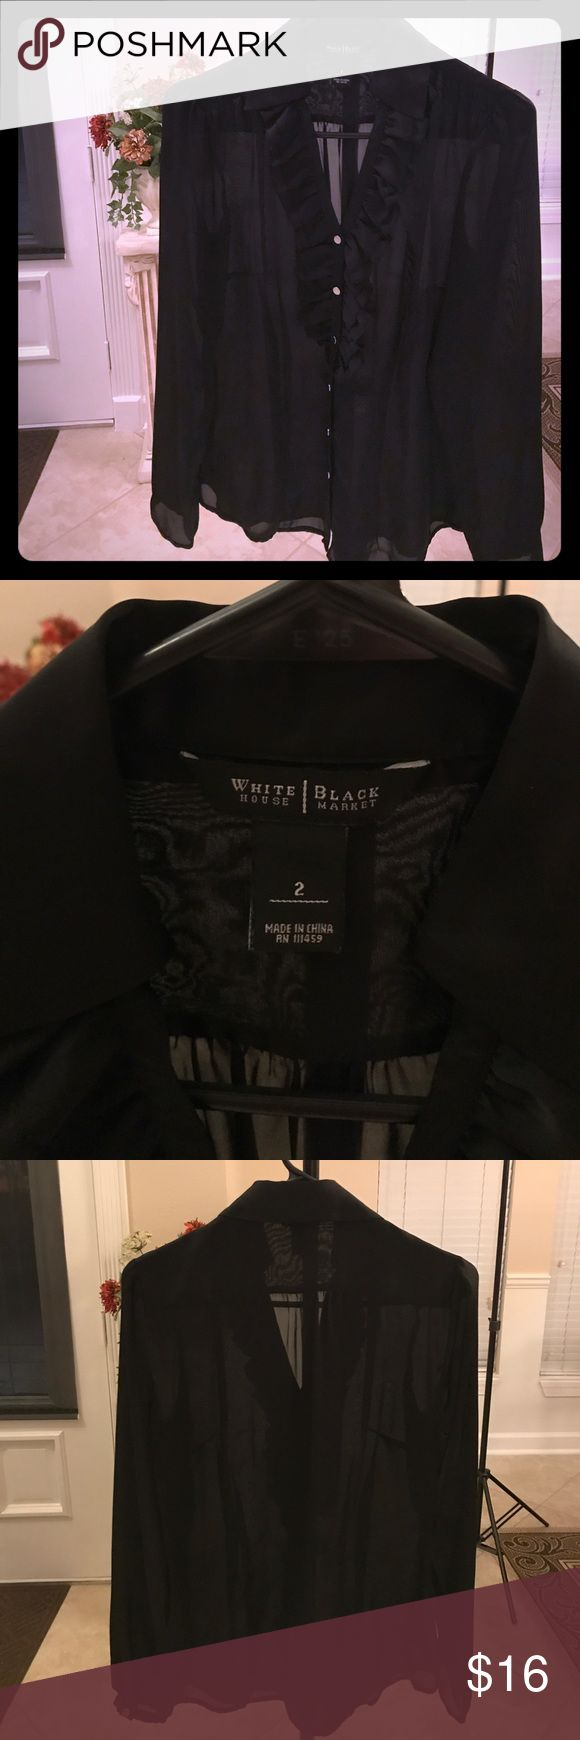 White House Black Market Blouse In perfect condition with so much attention to detail! Smocked accents on shoulders and cute ruffles in the front. Blouse has silver buttons and long sleeves. Very silky sheer polyester material that does not wrinkle. Comes from a smoke free home. White House Black Market Tops Blouses